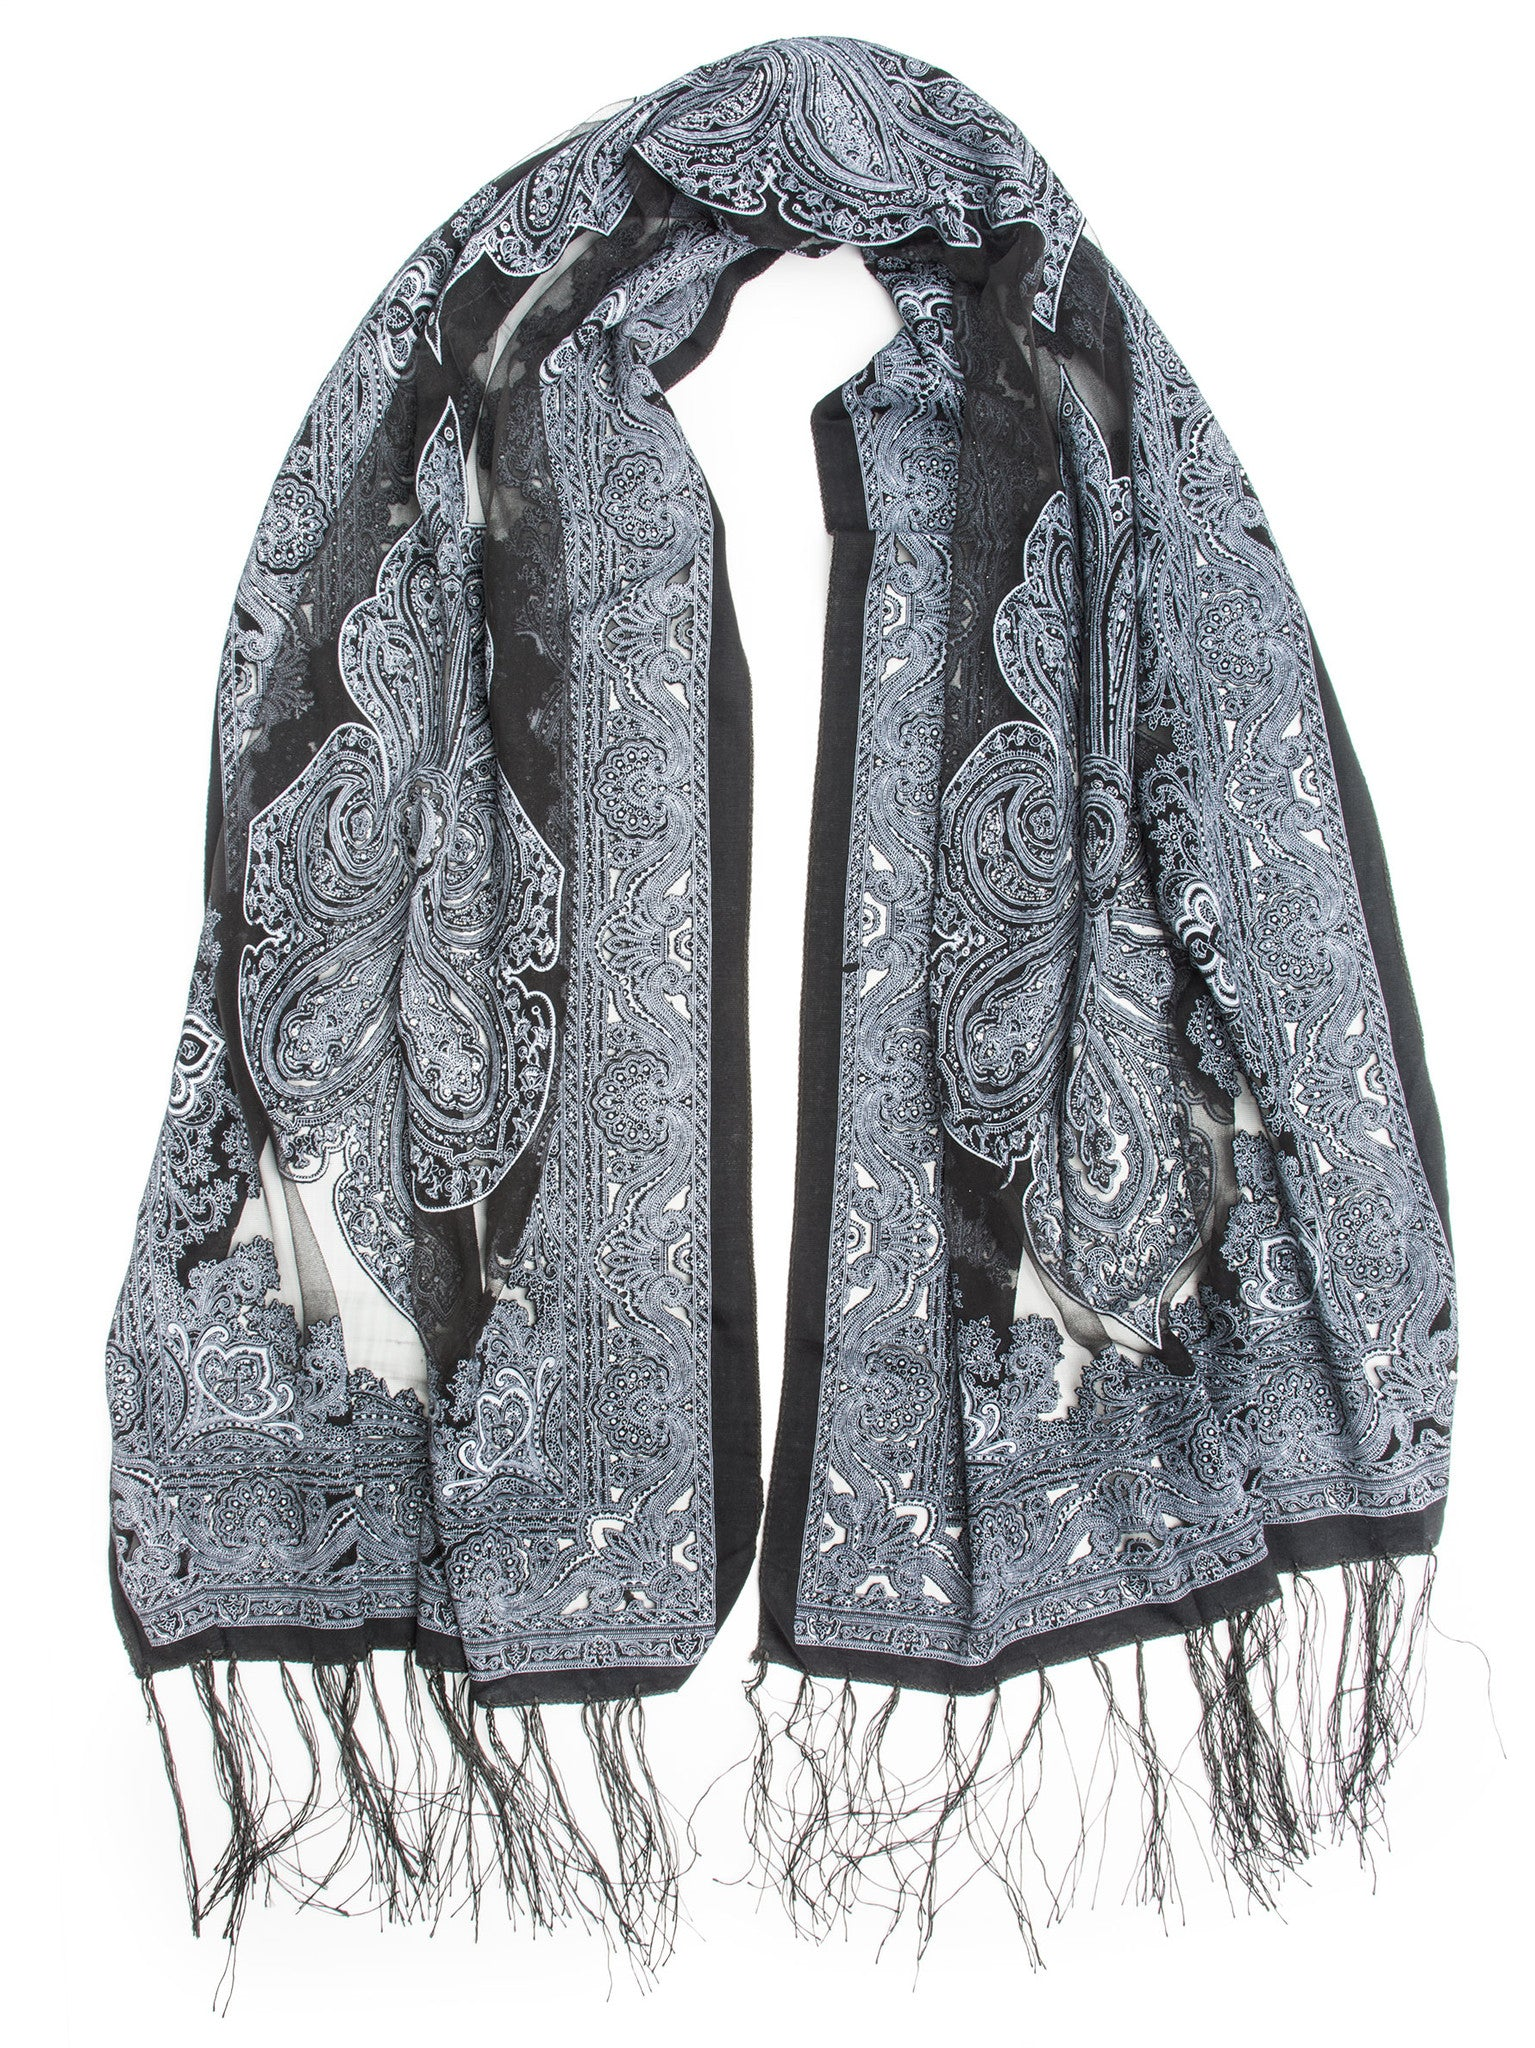 Scarves - Eleanora Scarf. Fringed Sheer Burnout Fleur de Lis Scarf -(Black/Charcoal / One Size) Bohomonde  - 4